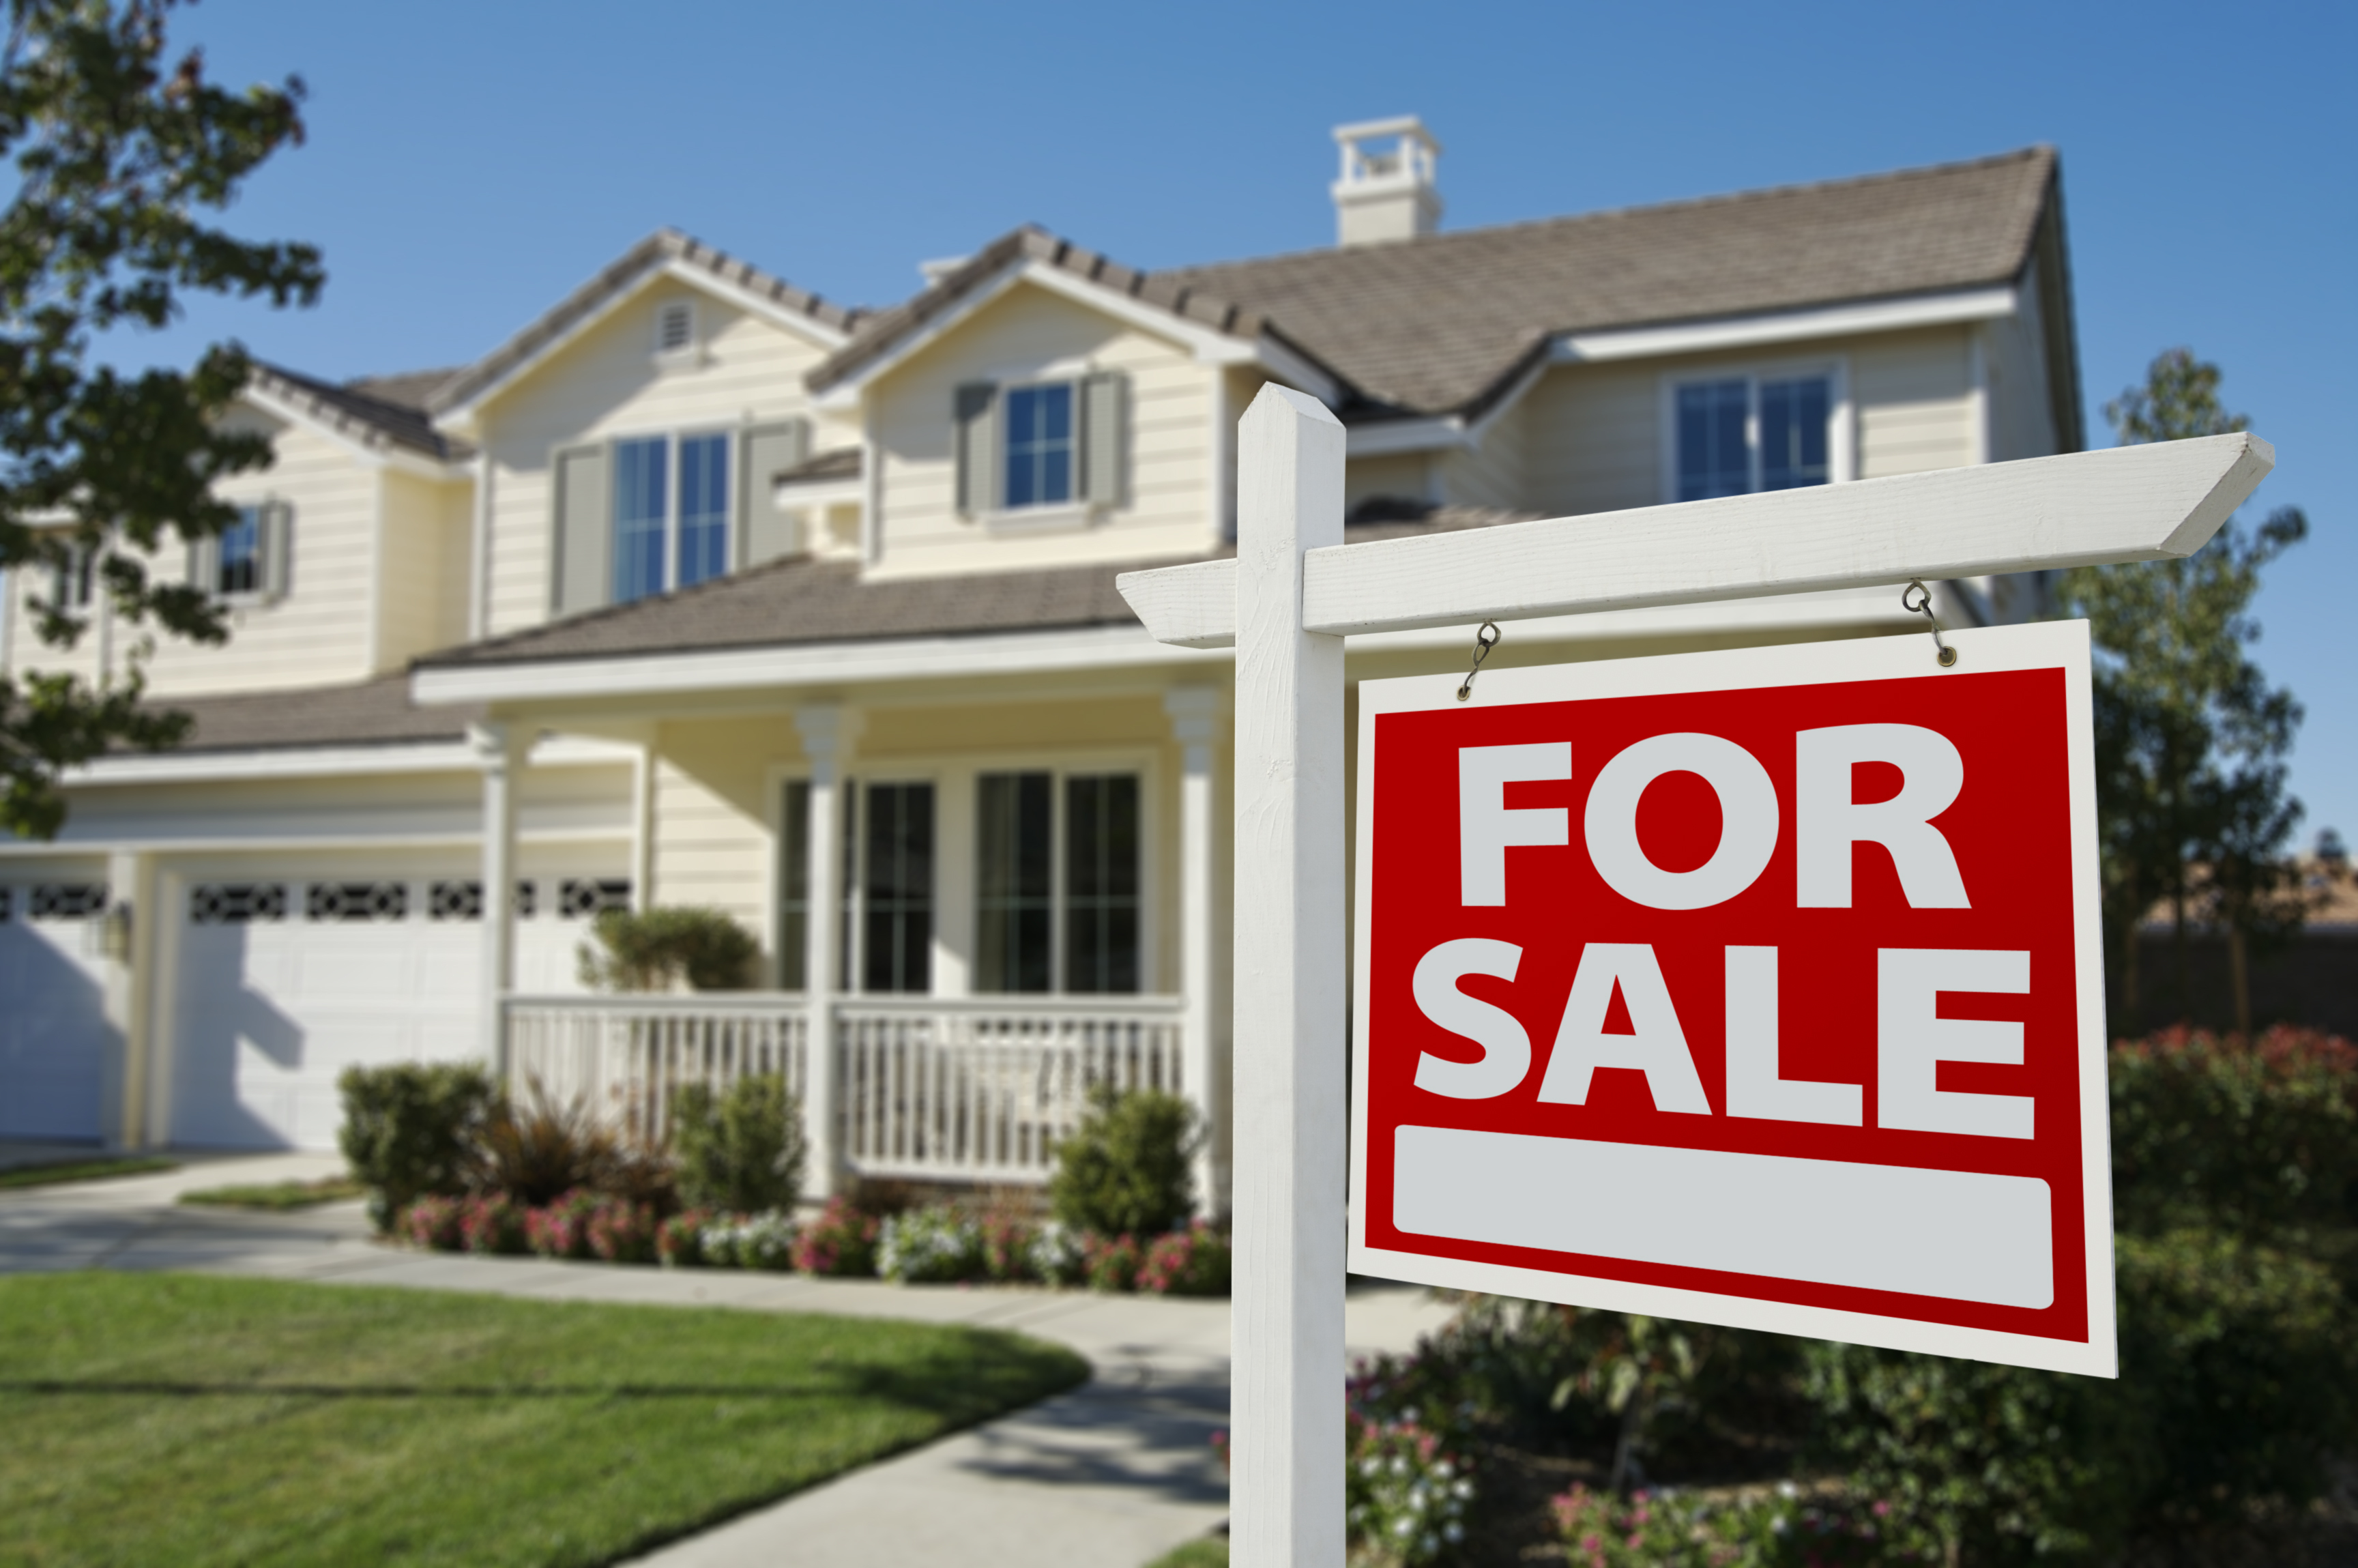 Top 5 Reasons to Buy vs. Rent Your Home | Zillow